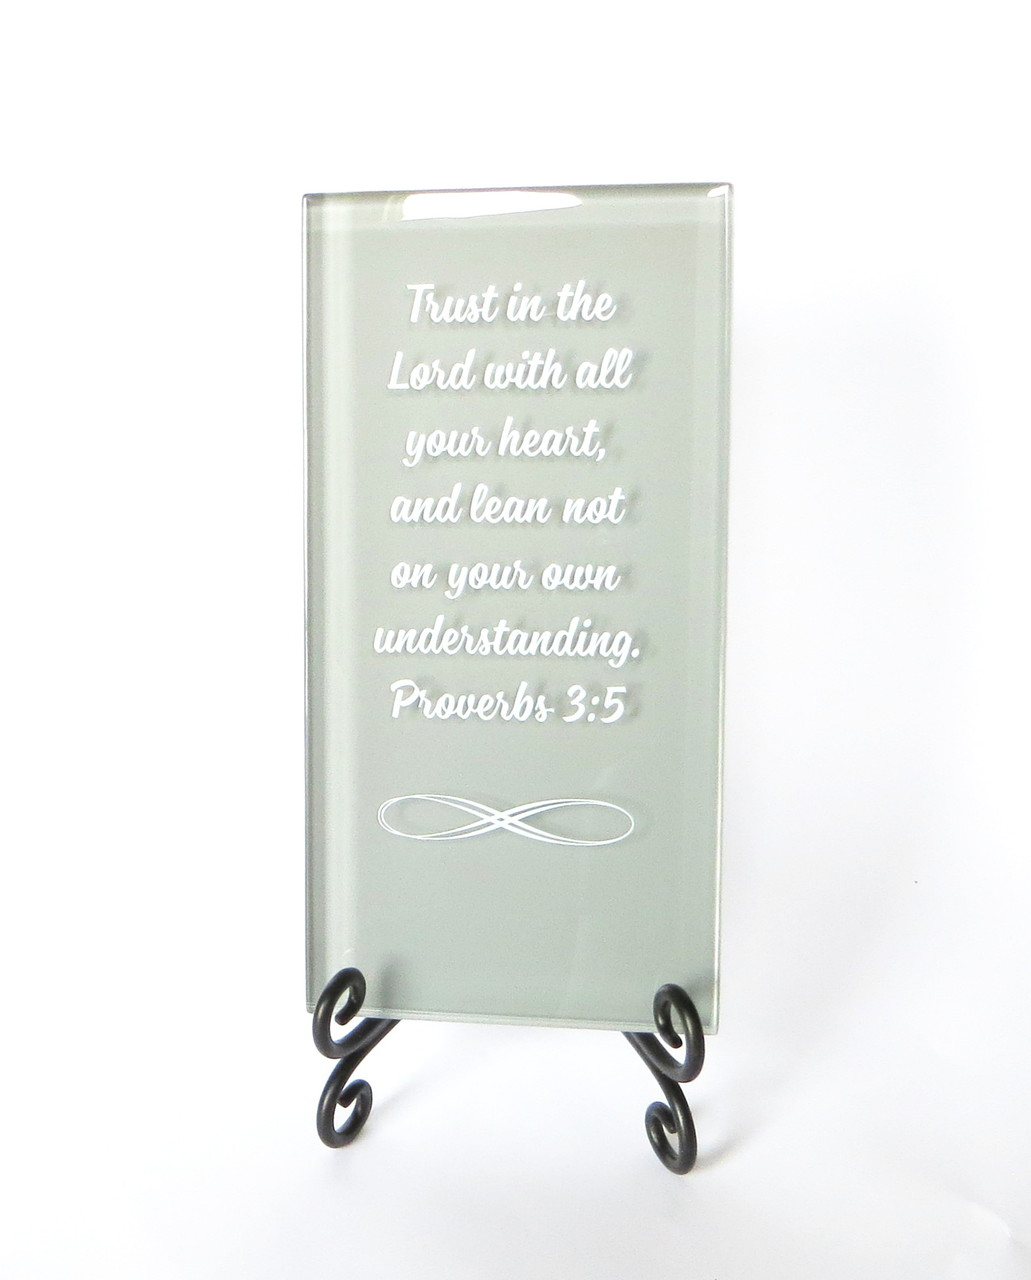 19bc87cbaa88 Trust in the Lord Inspirational Plaque from Lifeforce Glass